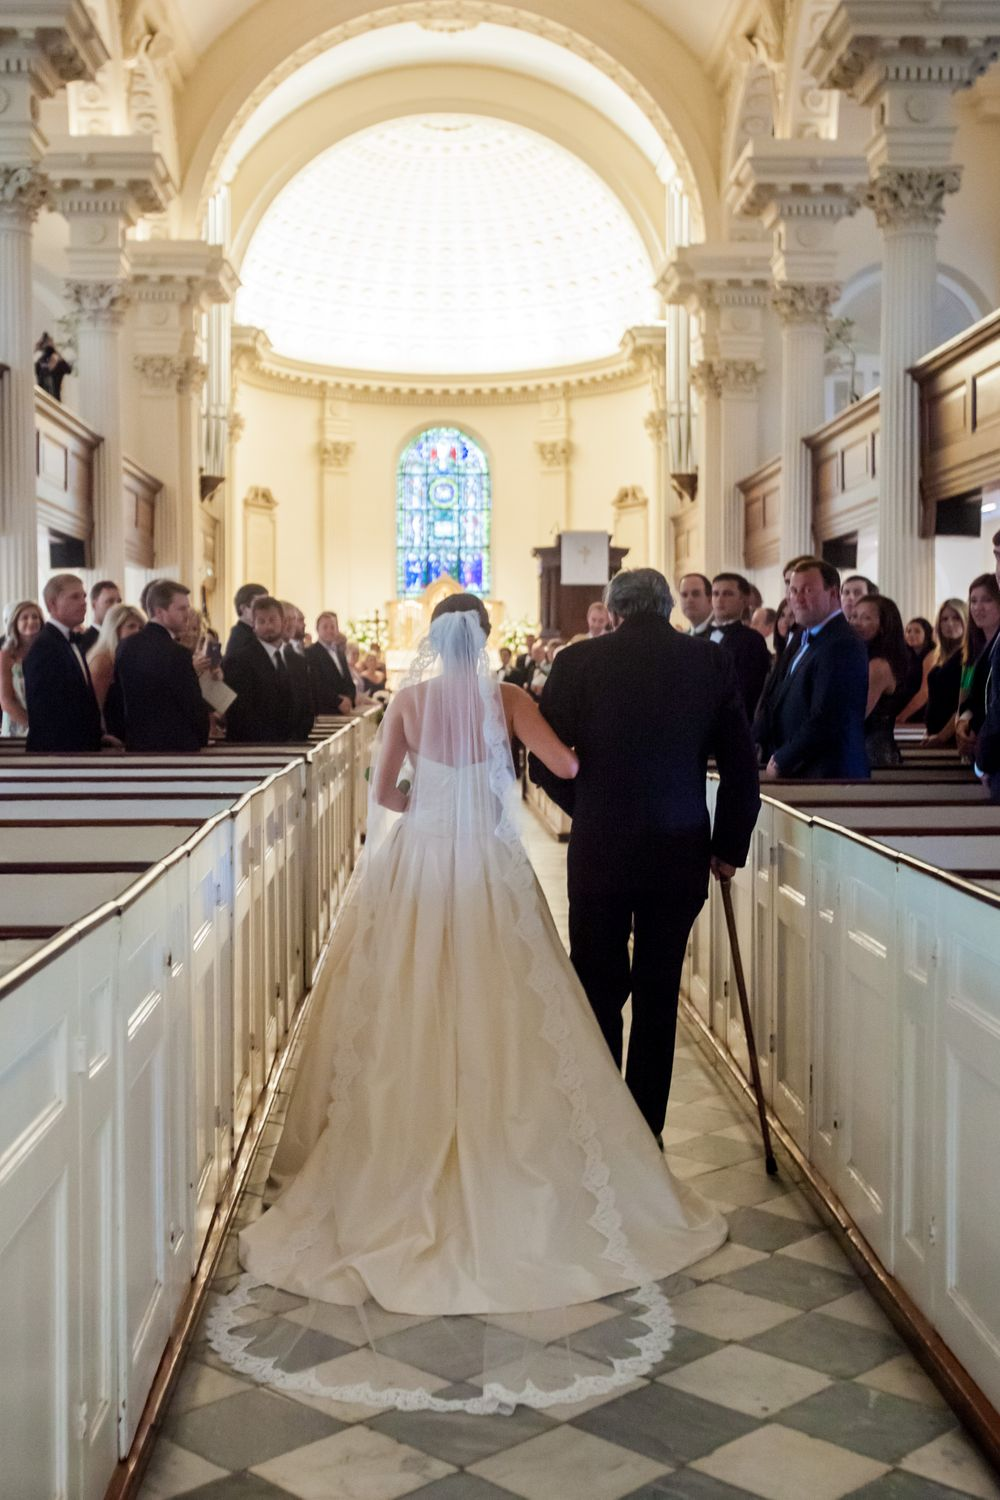 Bride Ashley and her father walk down the aisle during their wedding at St. Philips Church in Charleston, SC